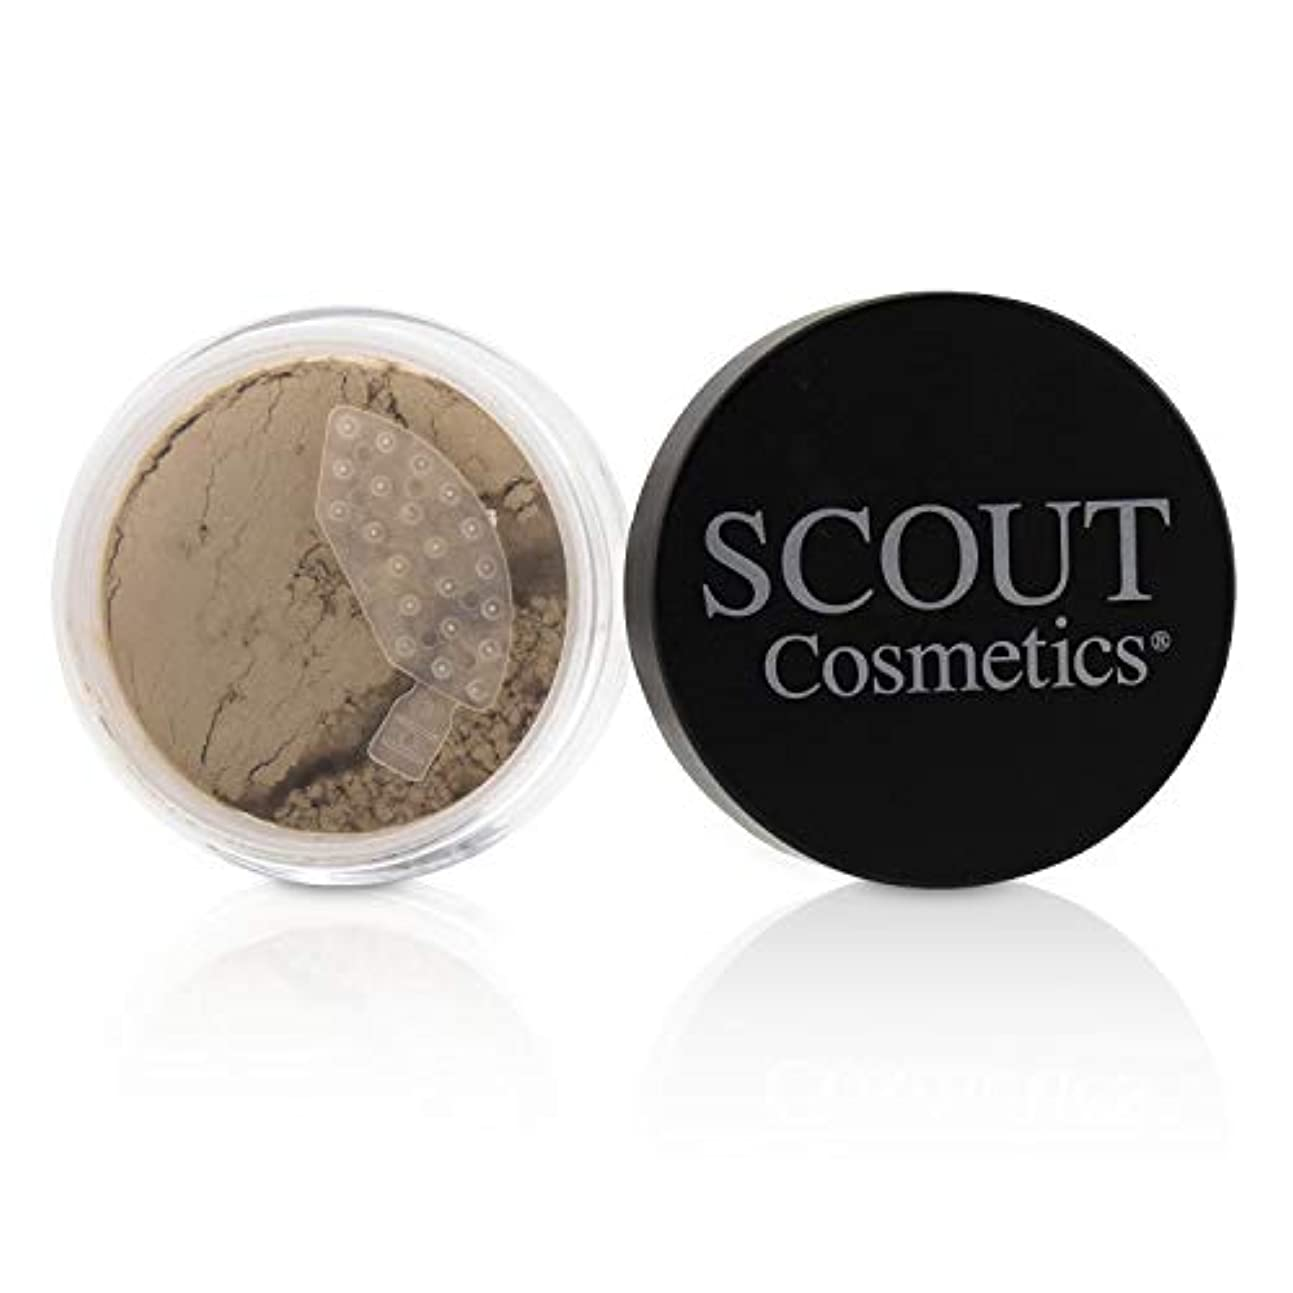 船員最終的にラリーベルモントSCOUT Cosmetics Mineral Powder Foundation SPF 20 - # Porcelain 8g/0.28oz並行輸入品